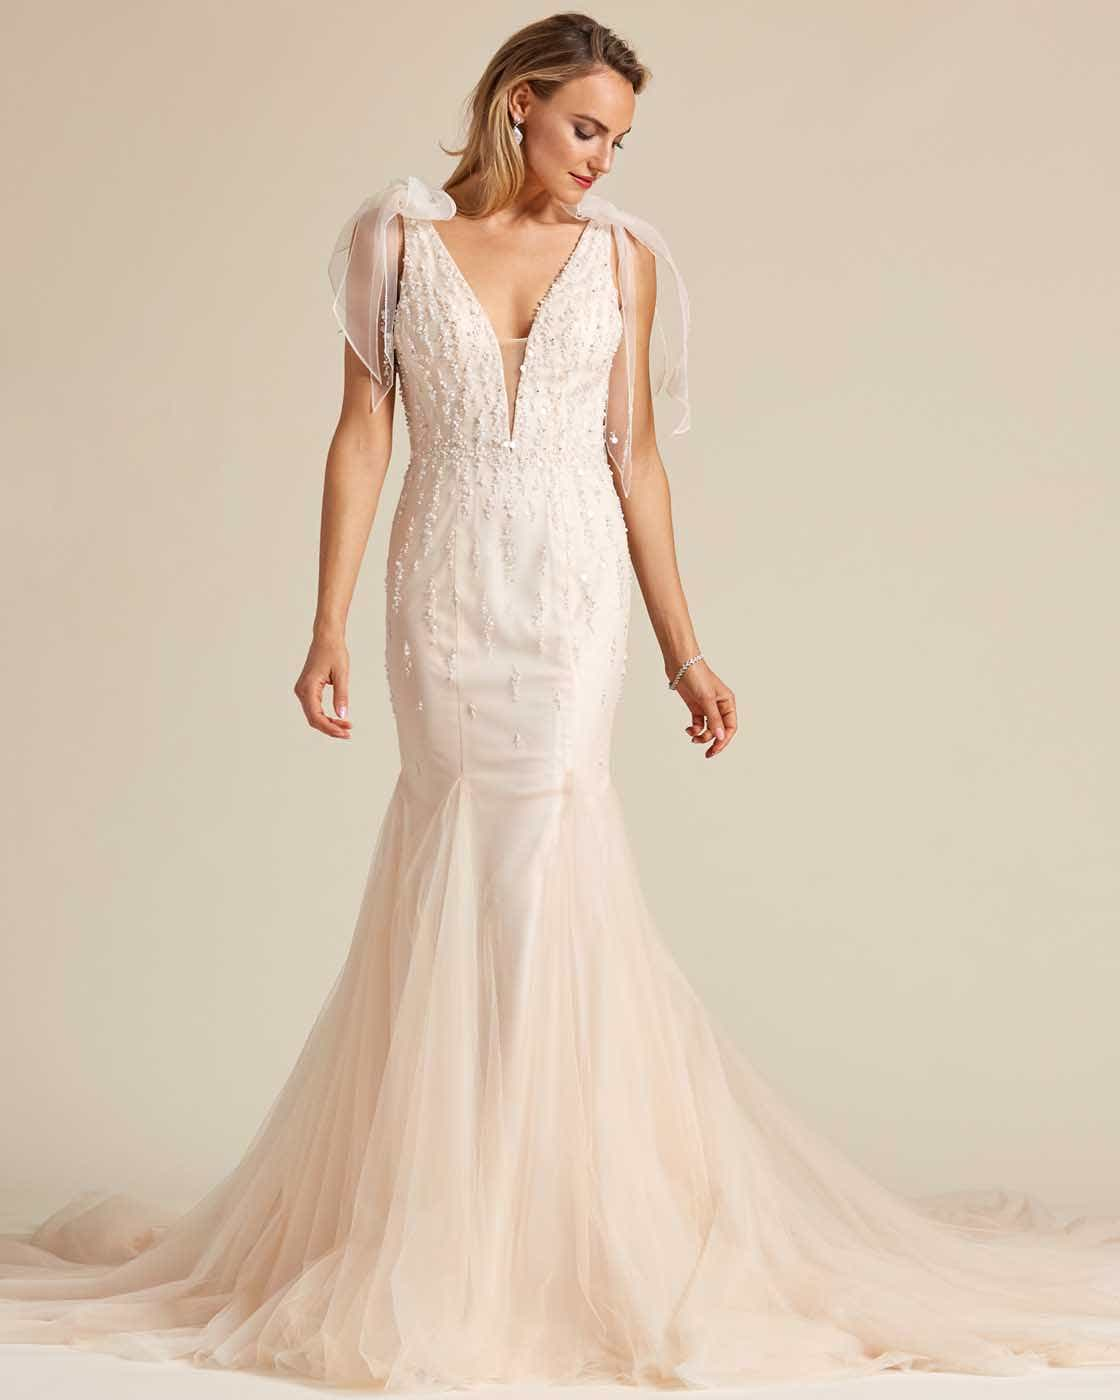 Vintage Style Champagne Sleeveless Wedding Gown - Front